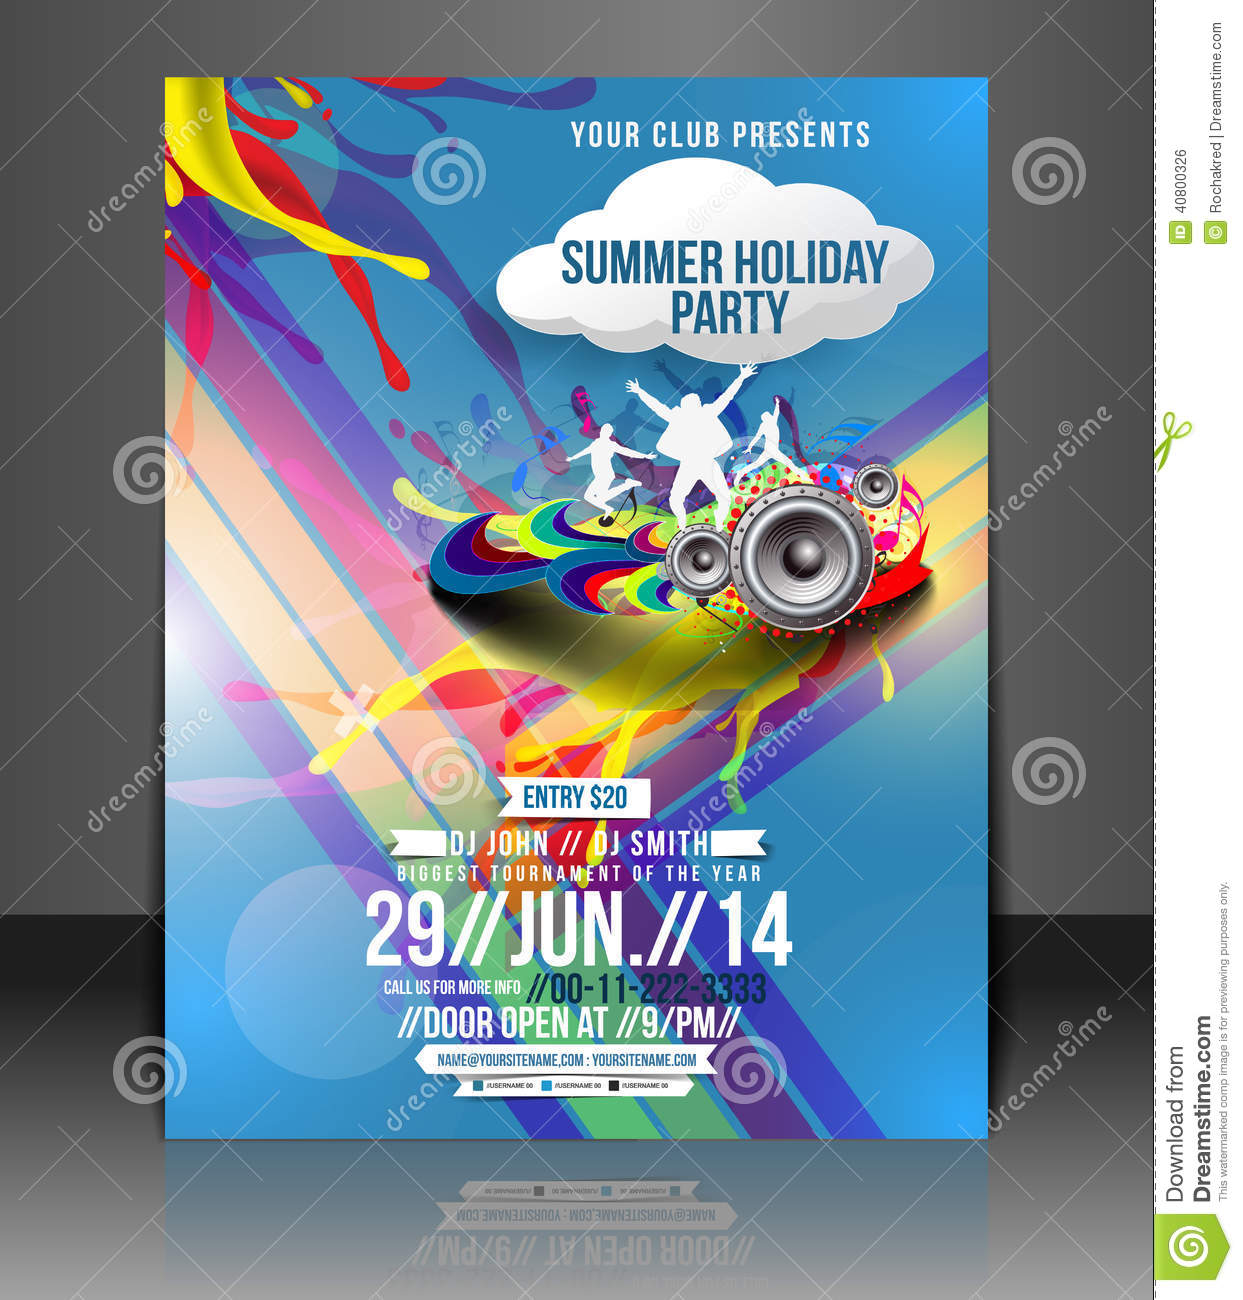 music party flyer design stock vector illustration of eps10 40800326